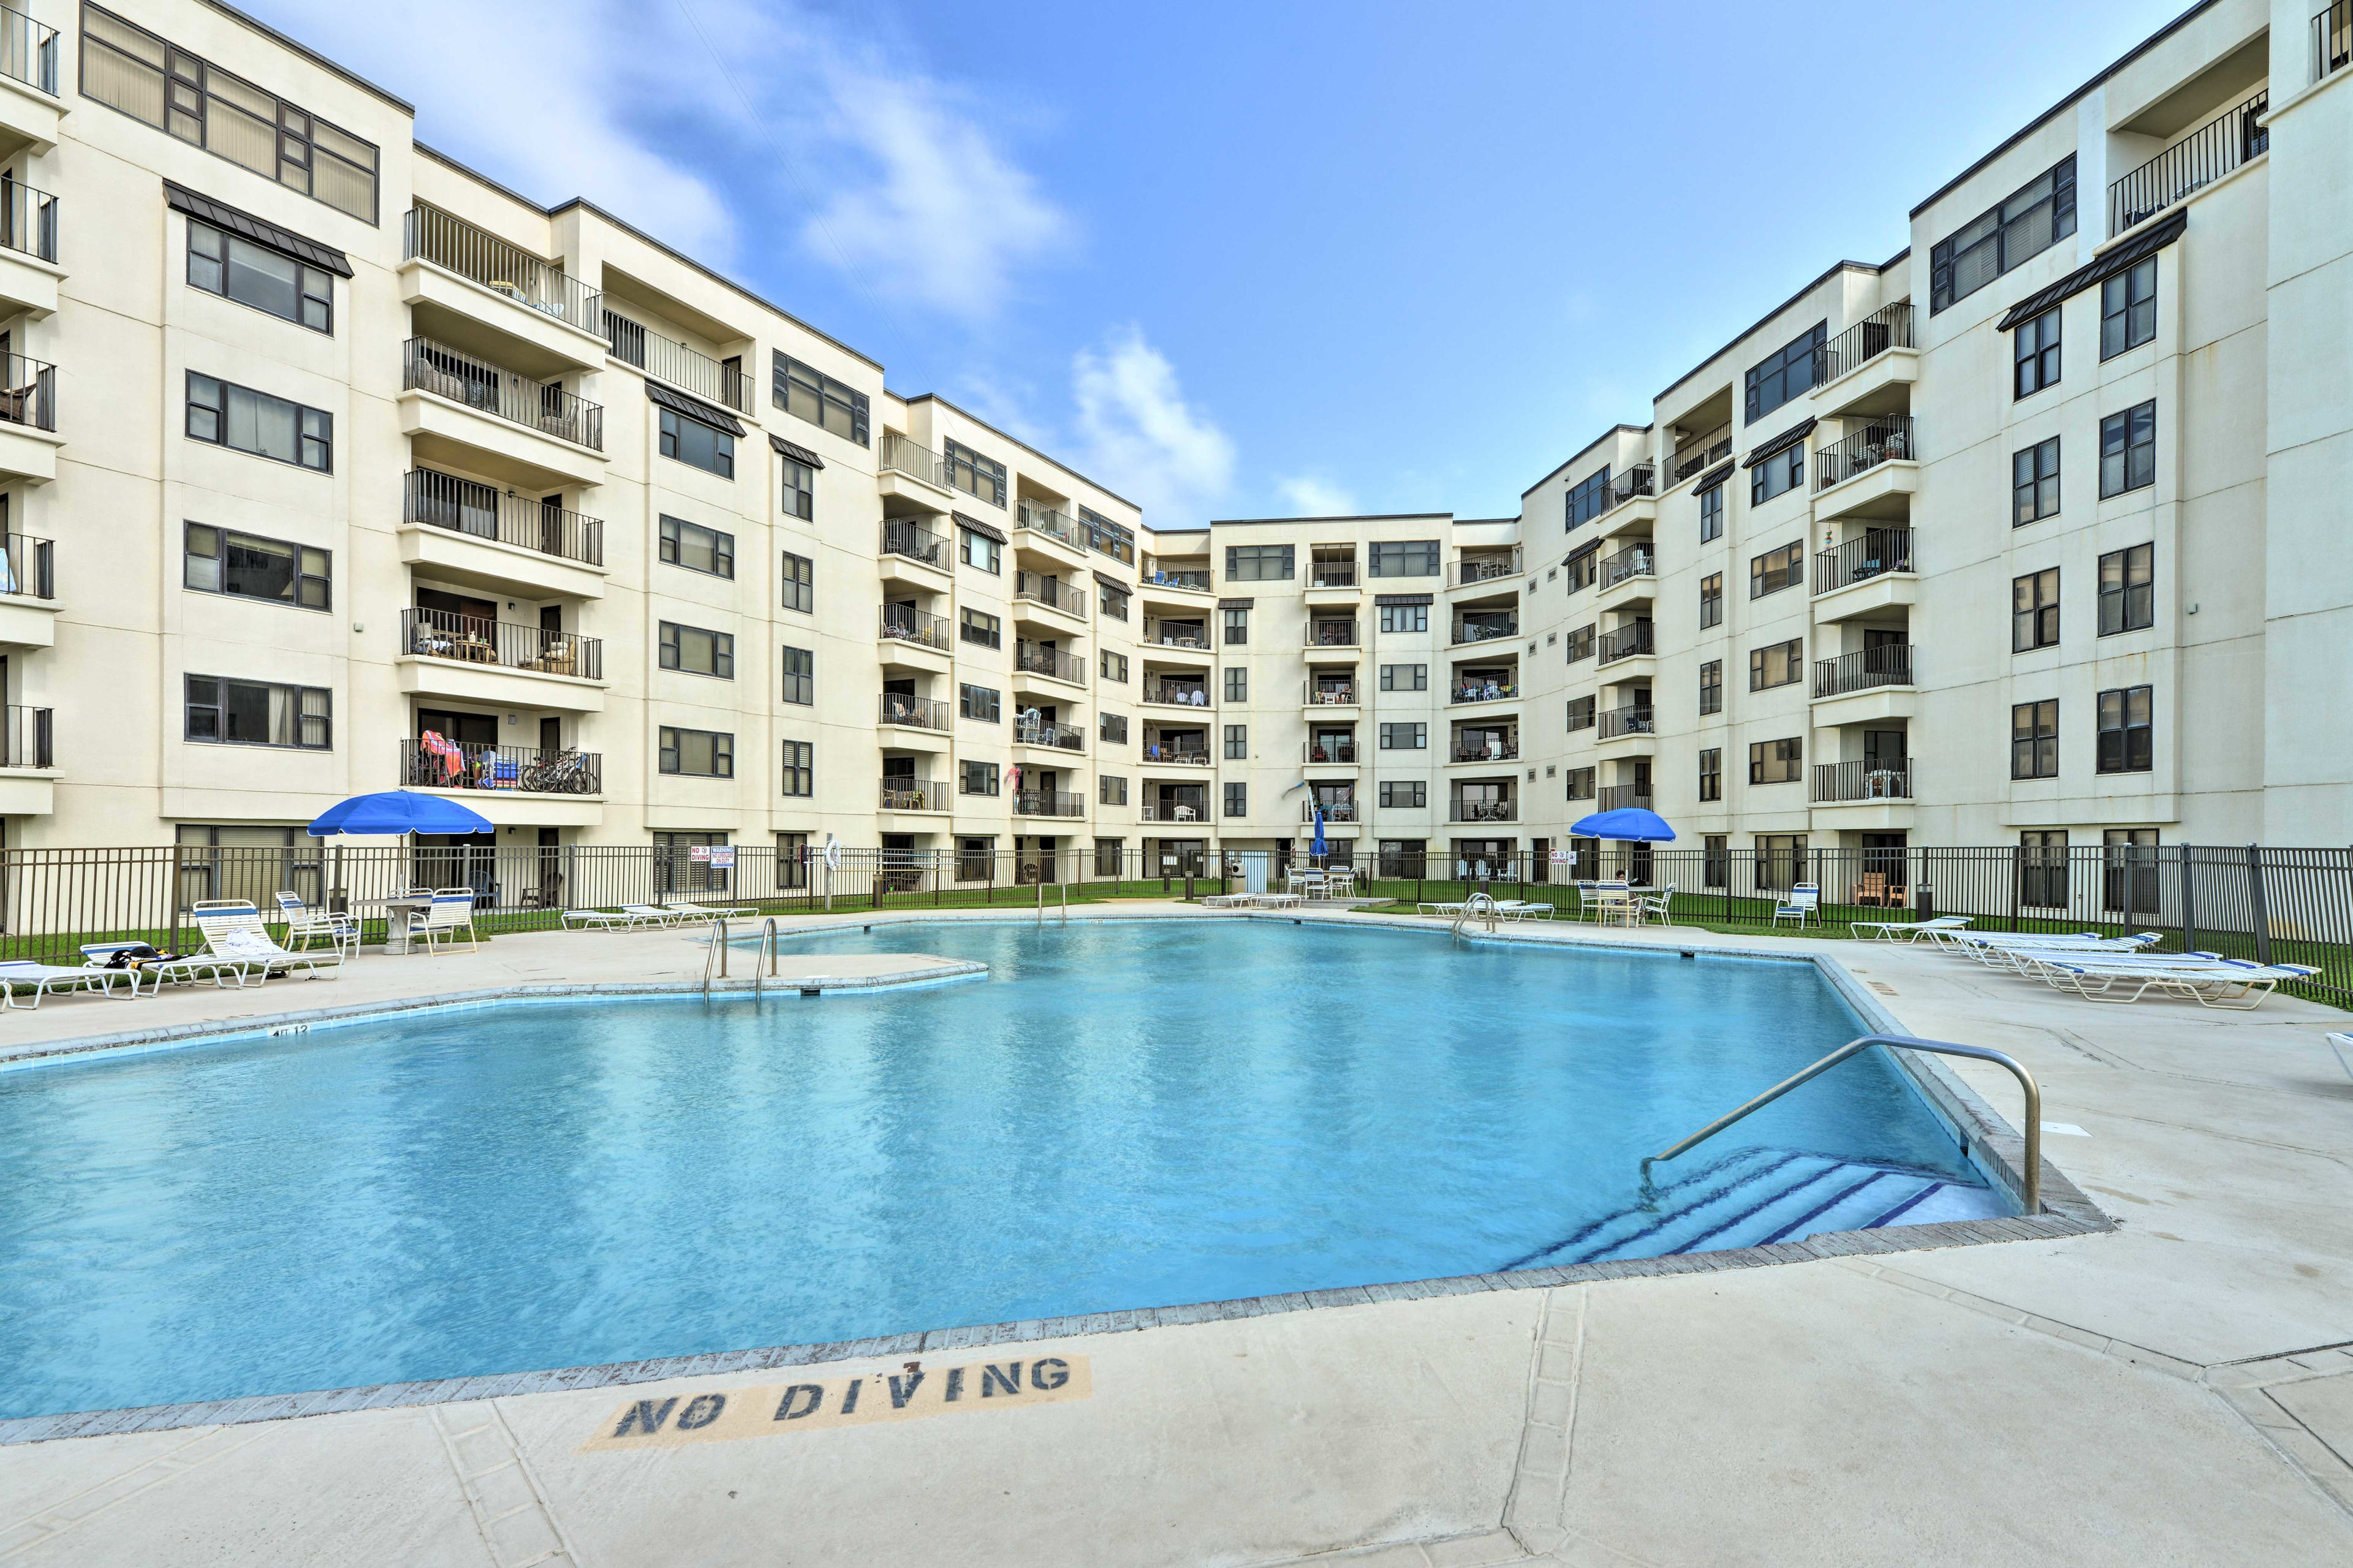 Beat the heat in this spacious community pool.